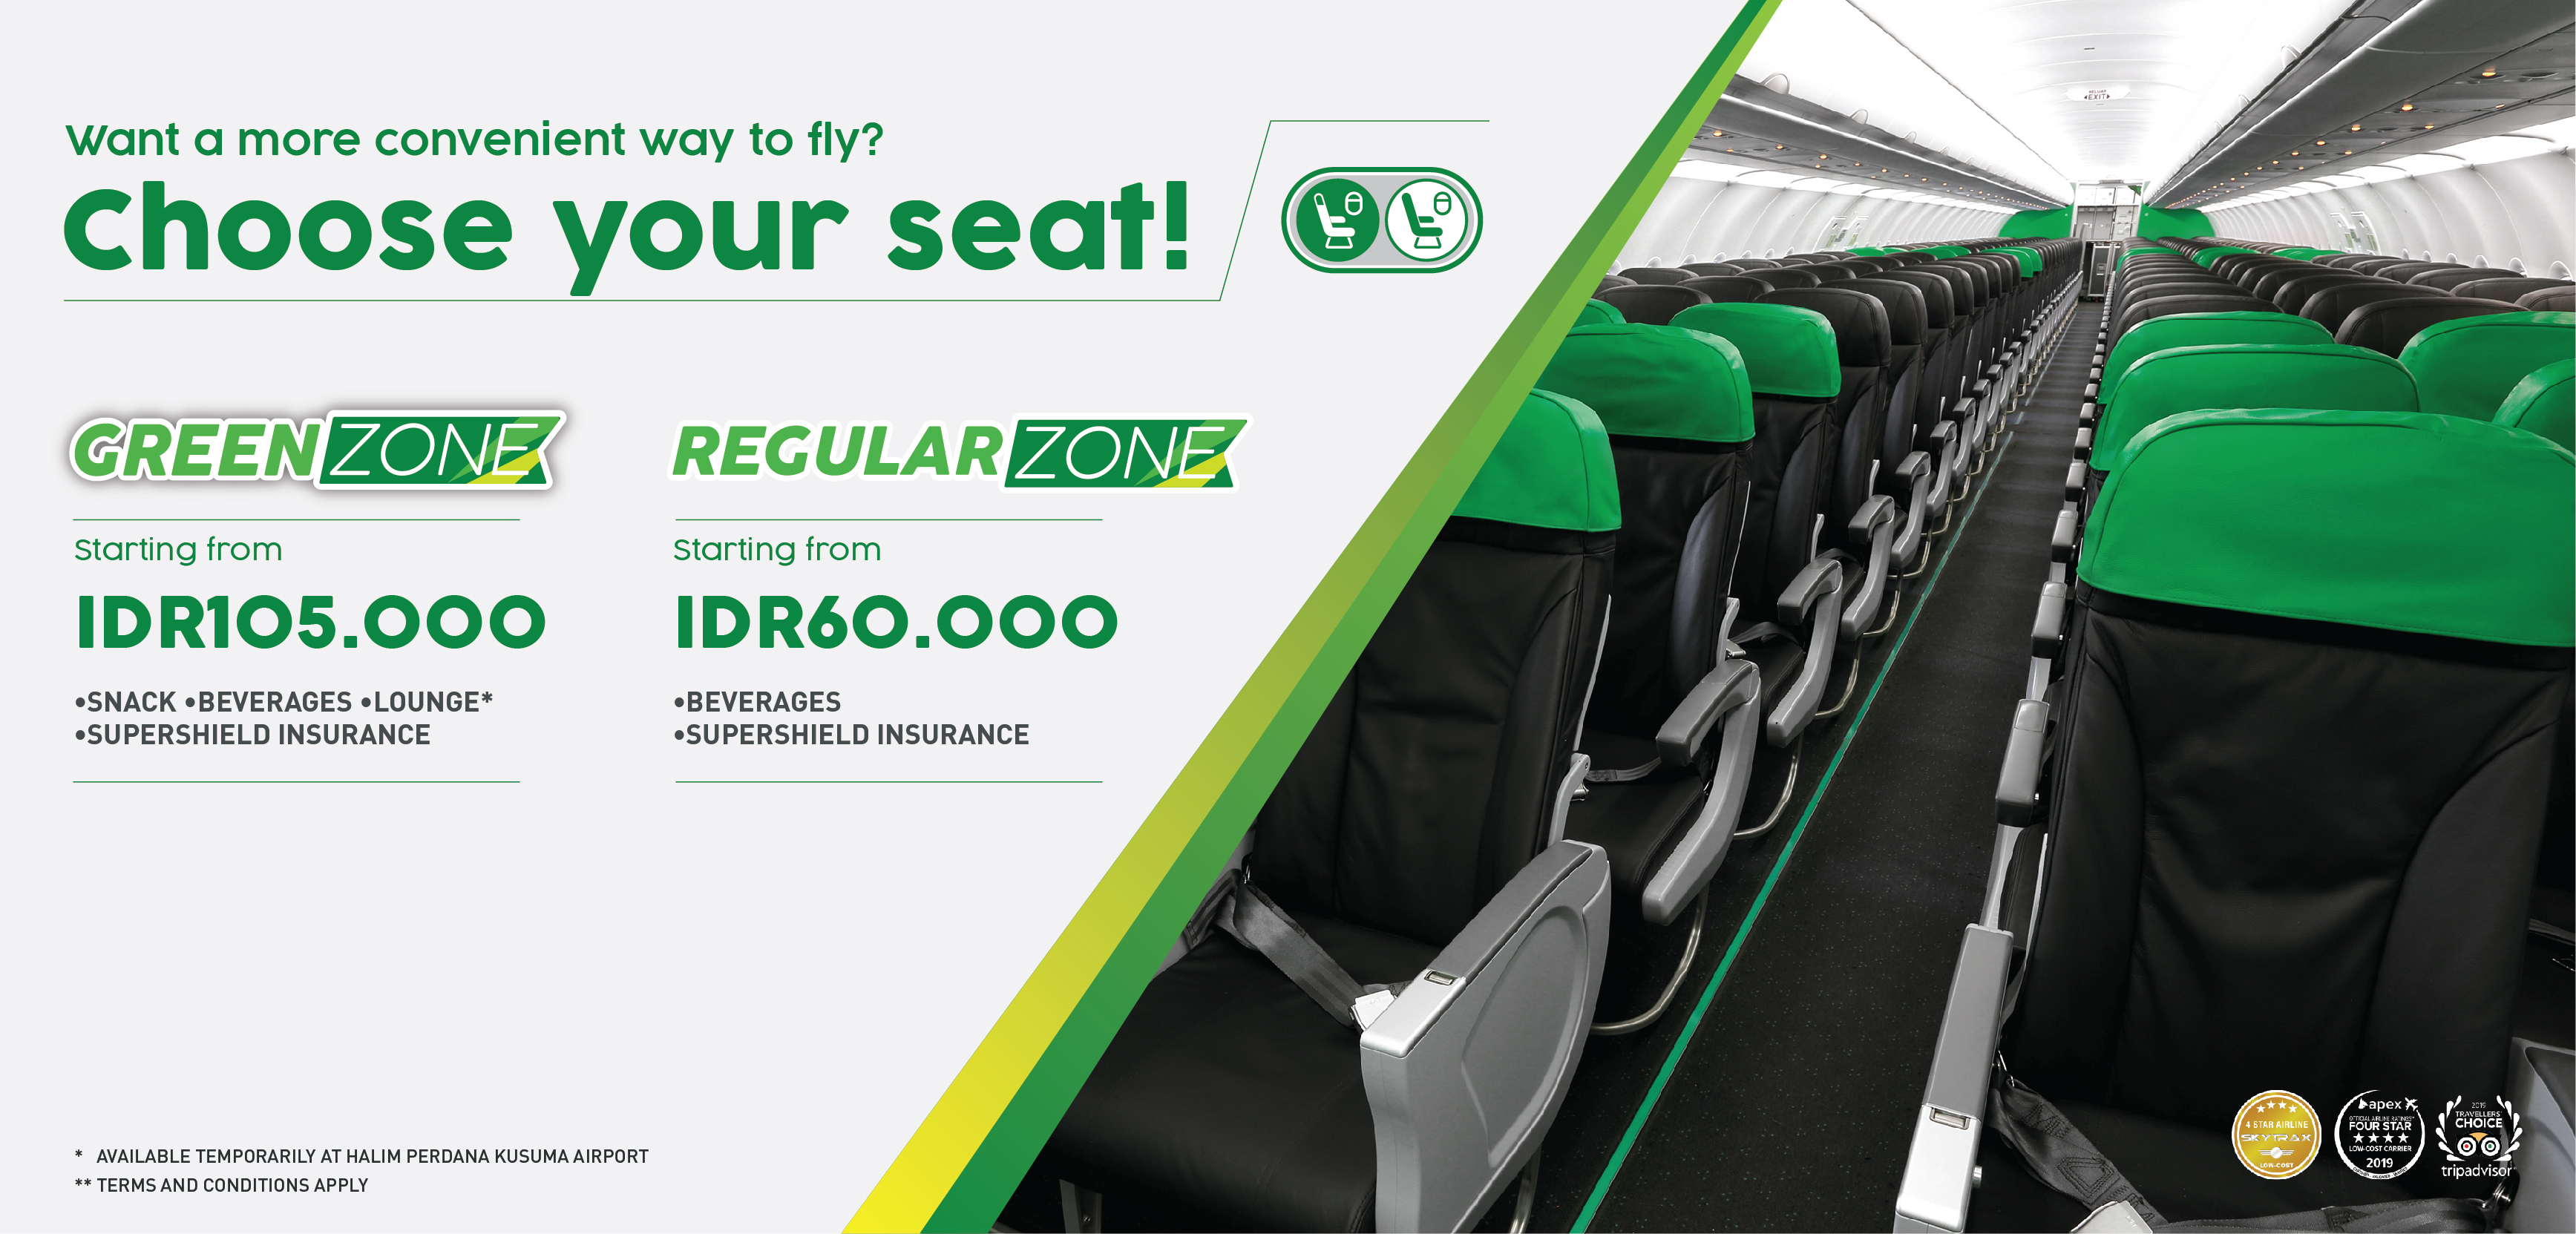 SEAT ASSIGNMENT LANDING PAGE 833x399px ENG-01